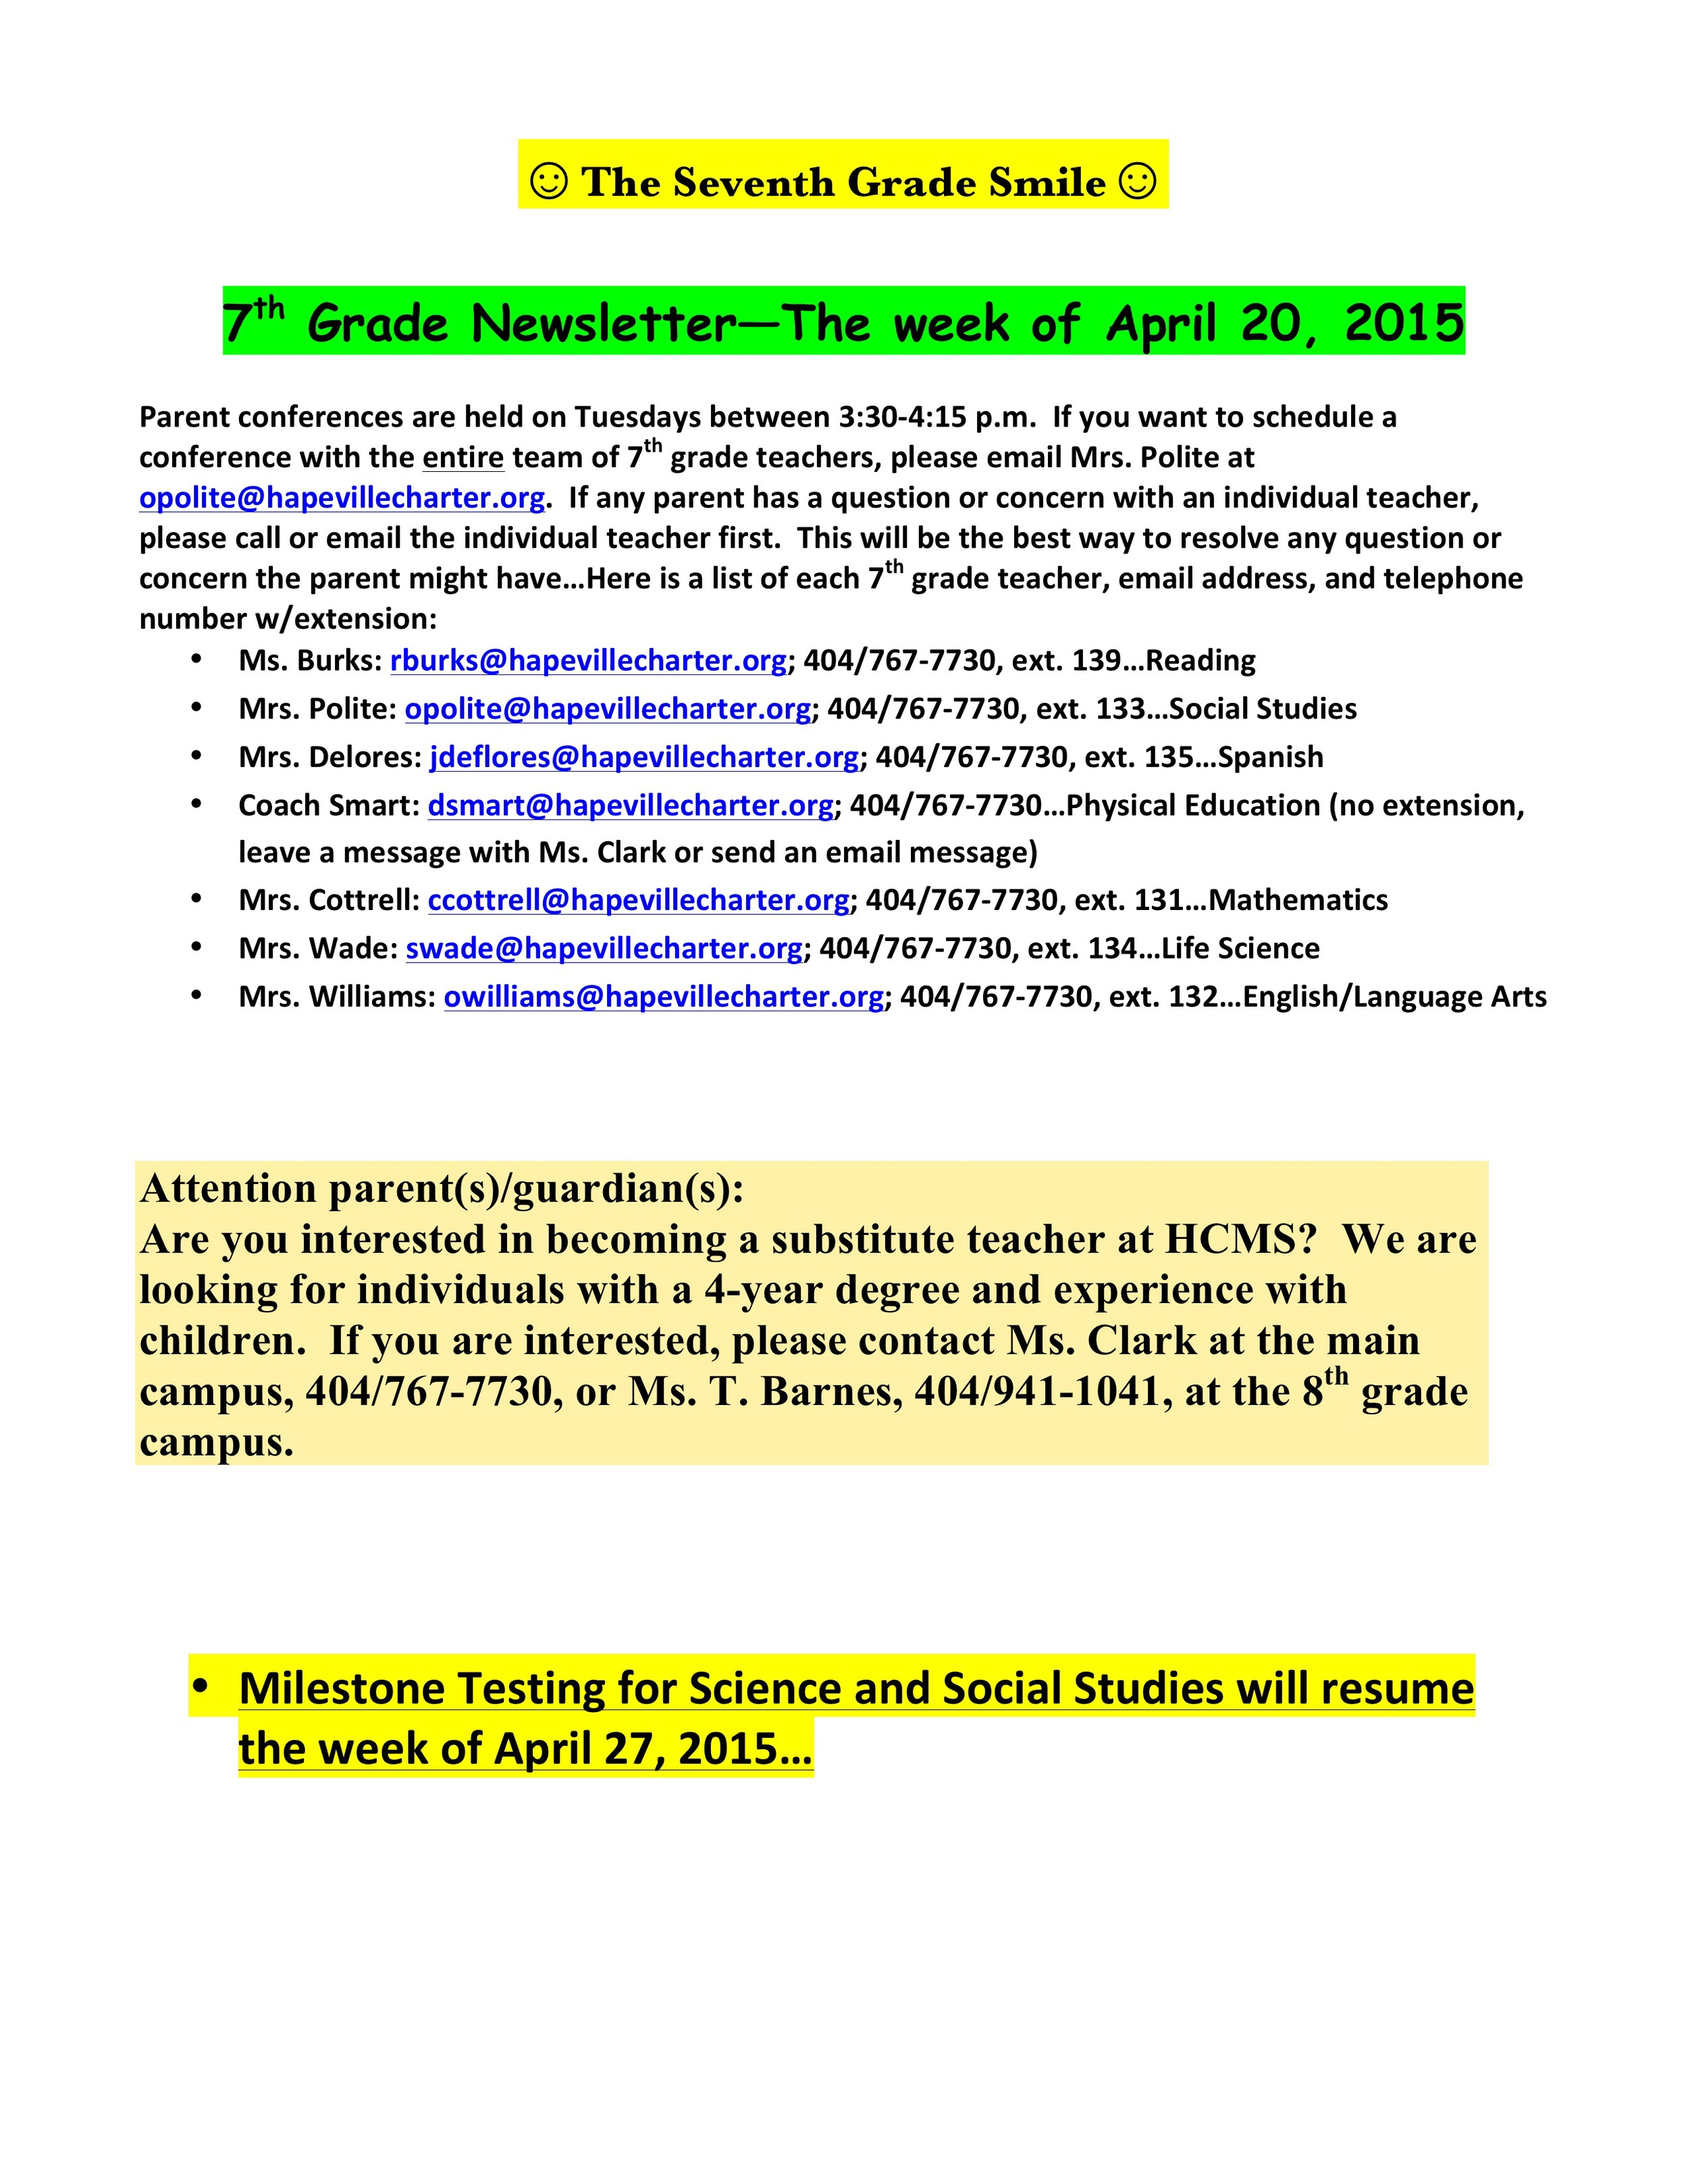 Newsletter Image7th grade 4-20.jpeg